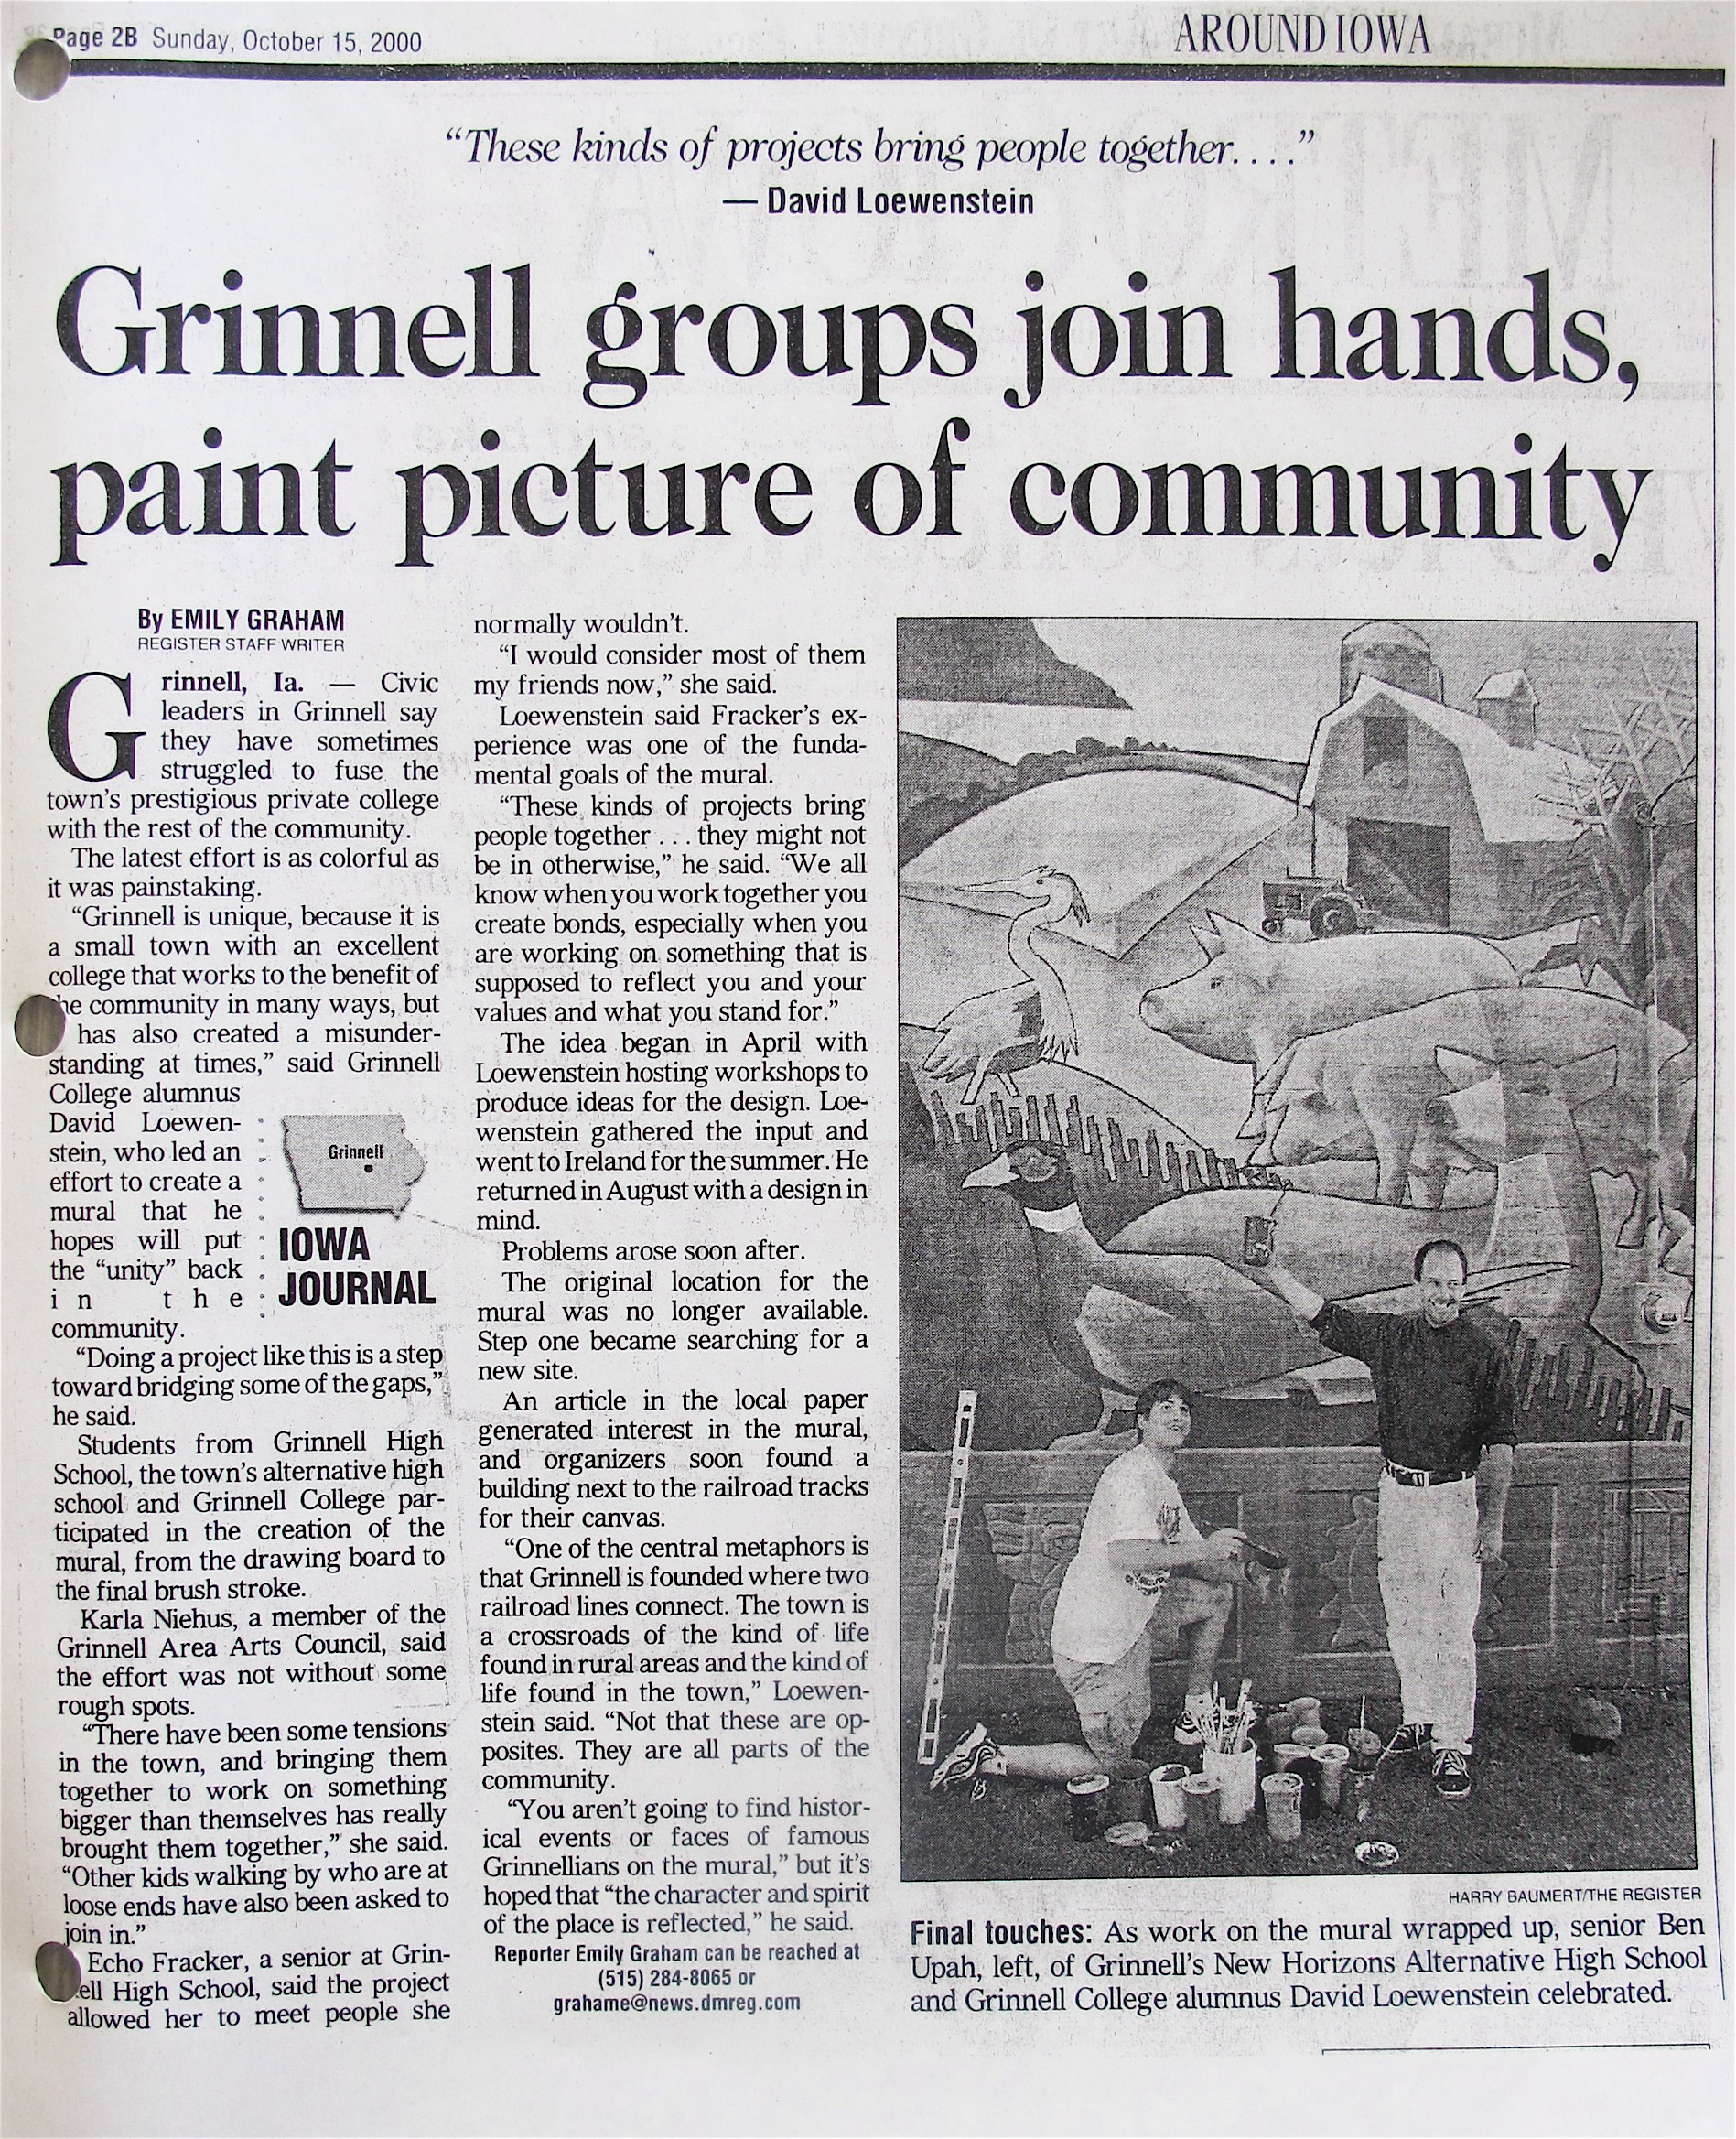 Article from the Grinnell Herald-Register